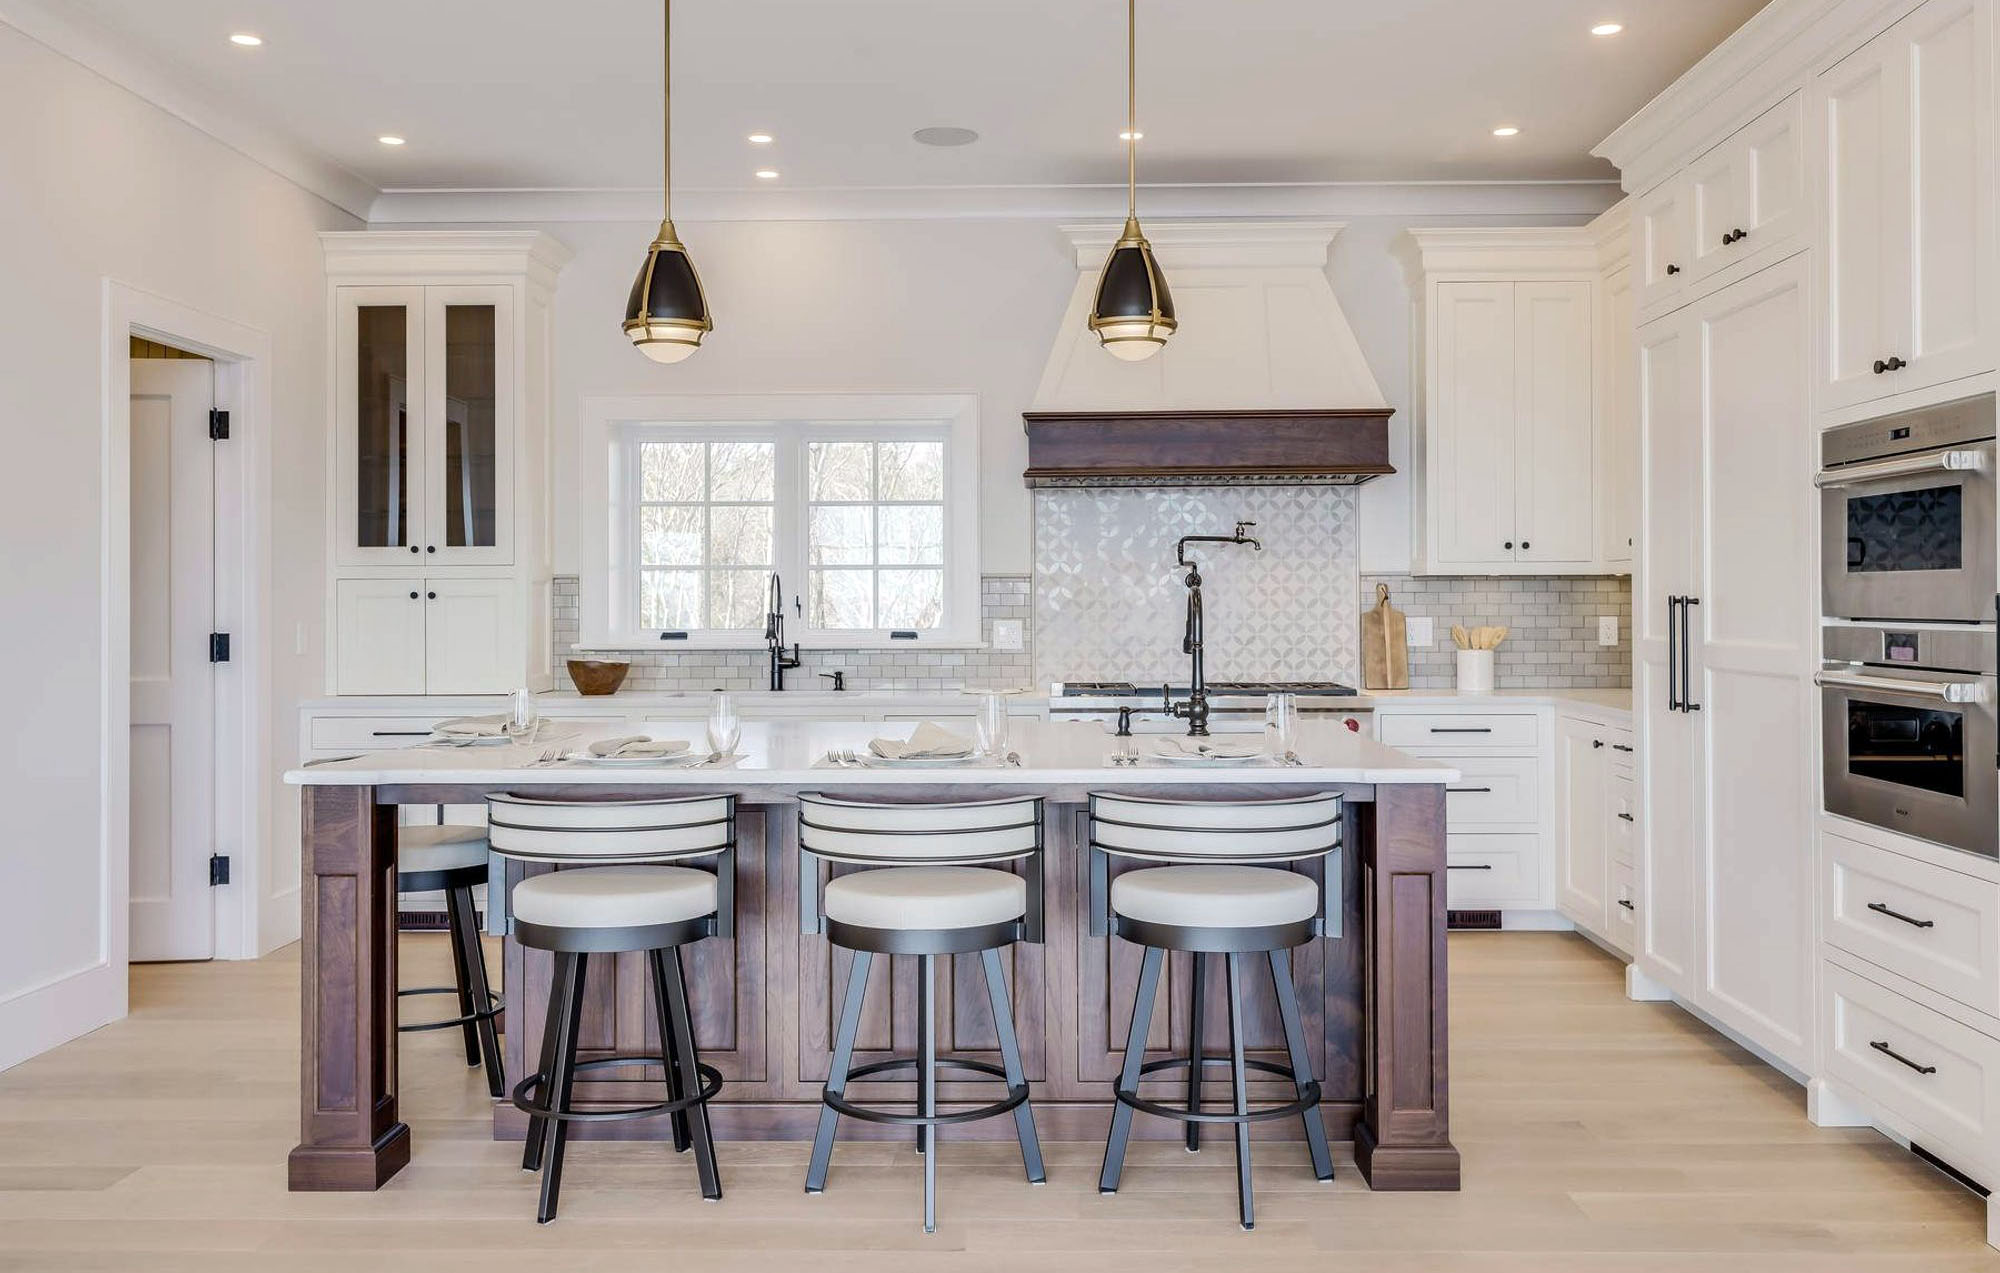 White shaker style kitchen cabinets with aged bronze knobs, light hardwood floors, stainless steel appliances and brown wood island.